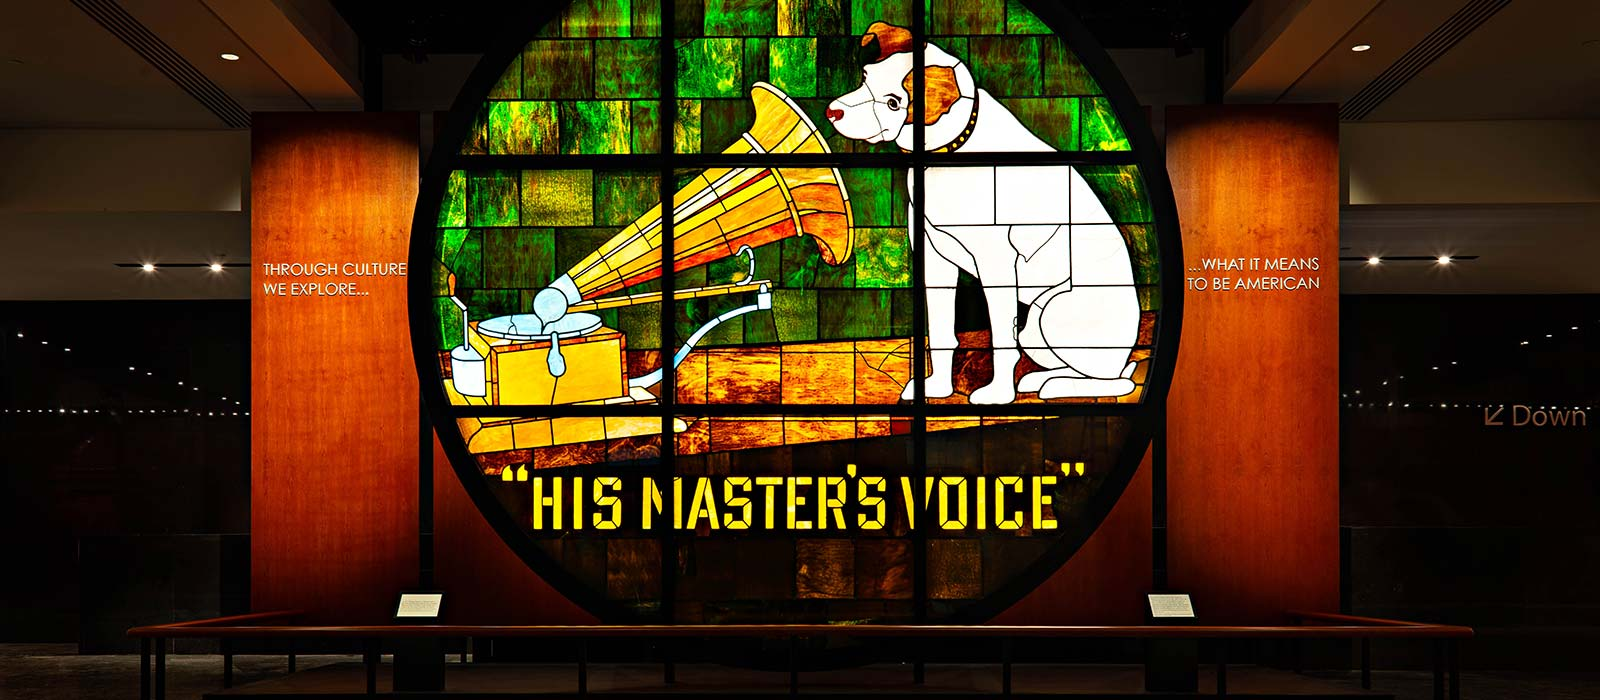 Stained-glass window of RCA's 'his master's voice' logo